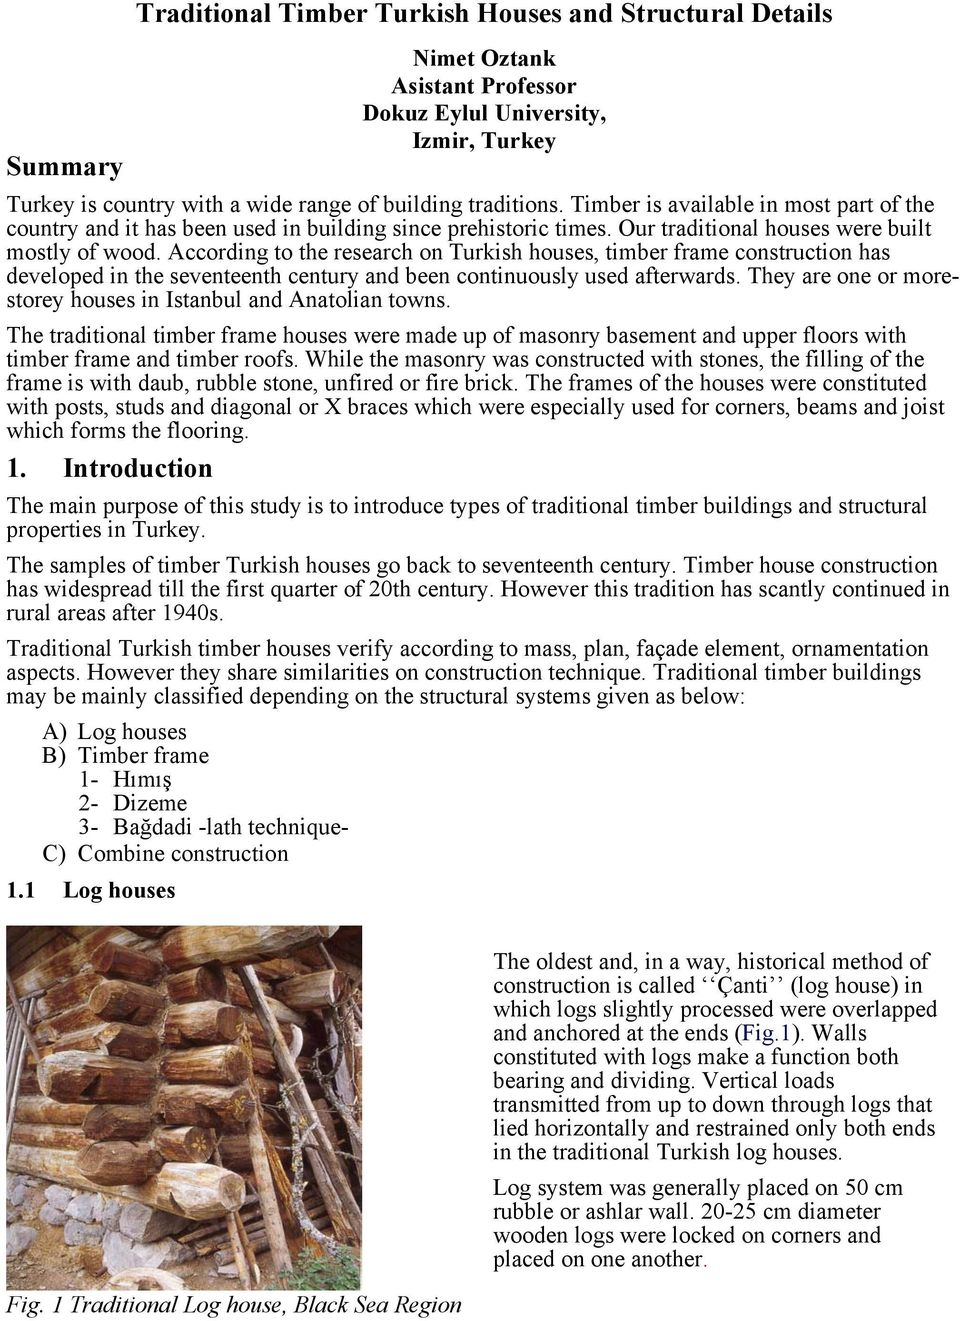 Traditional Timber Turkish Houses and Structural Details - PDF